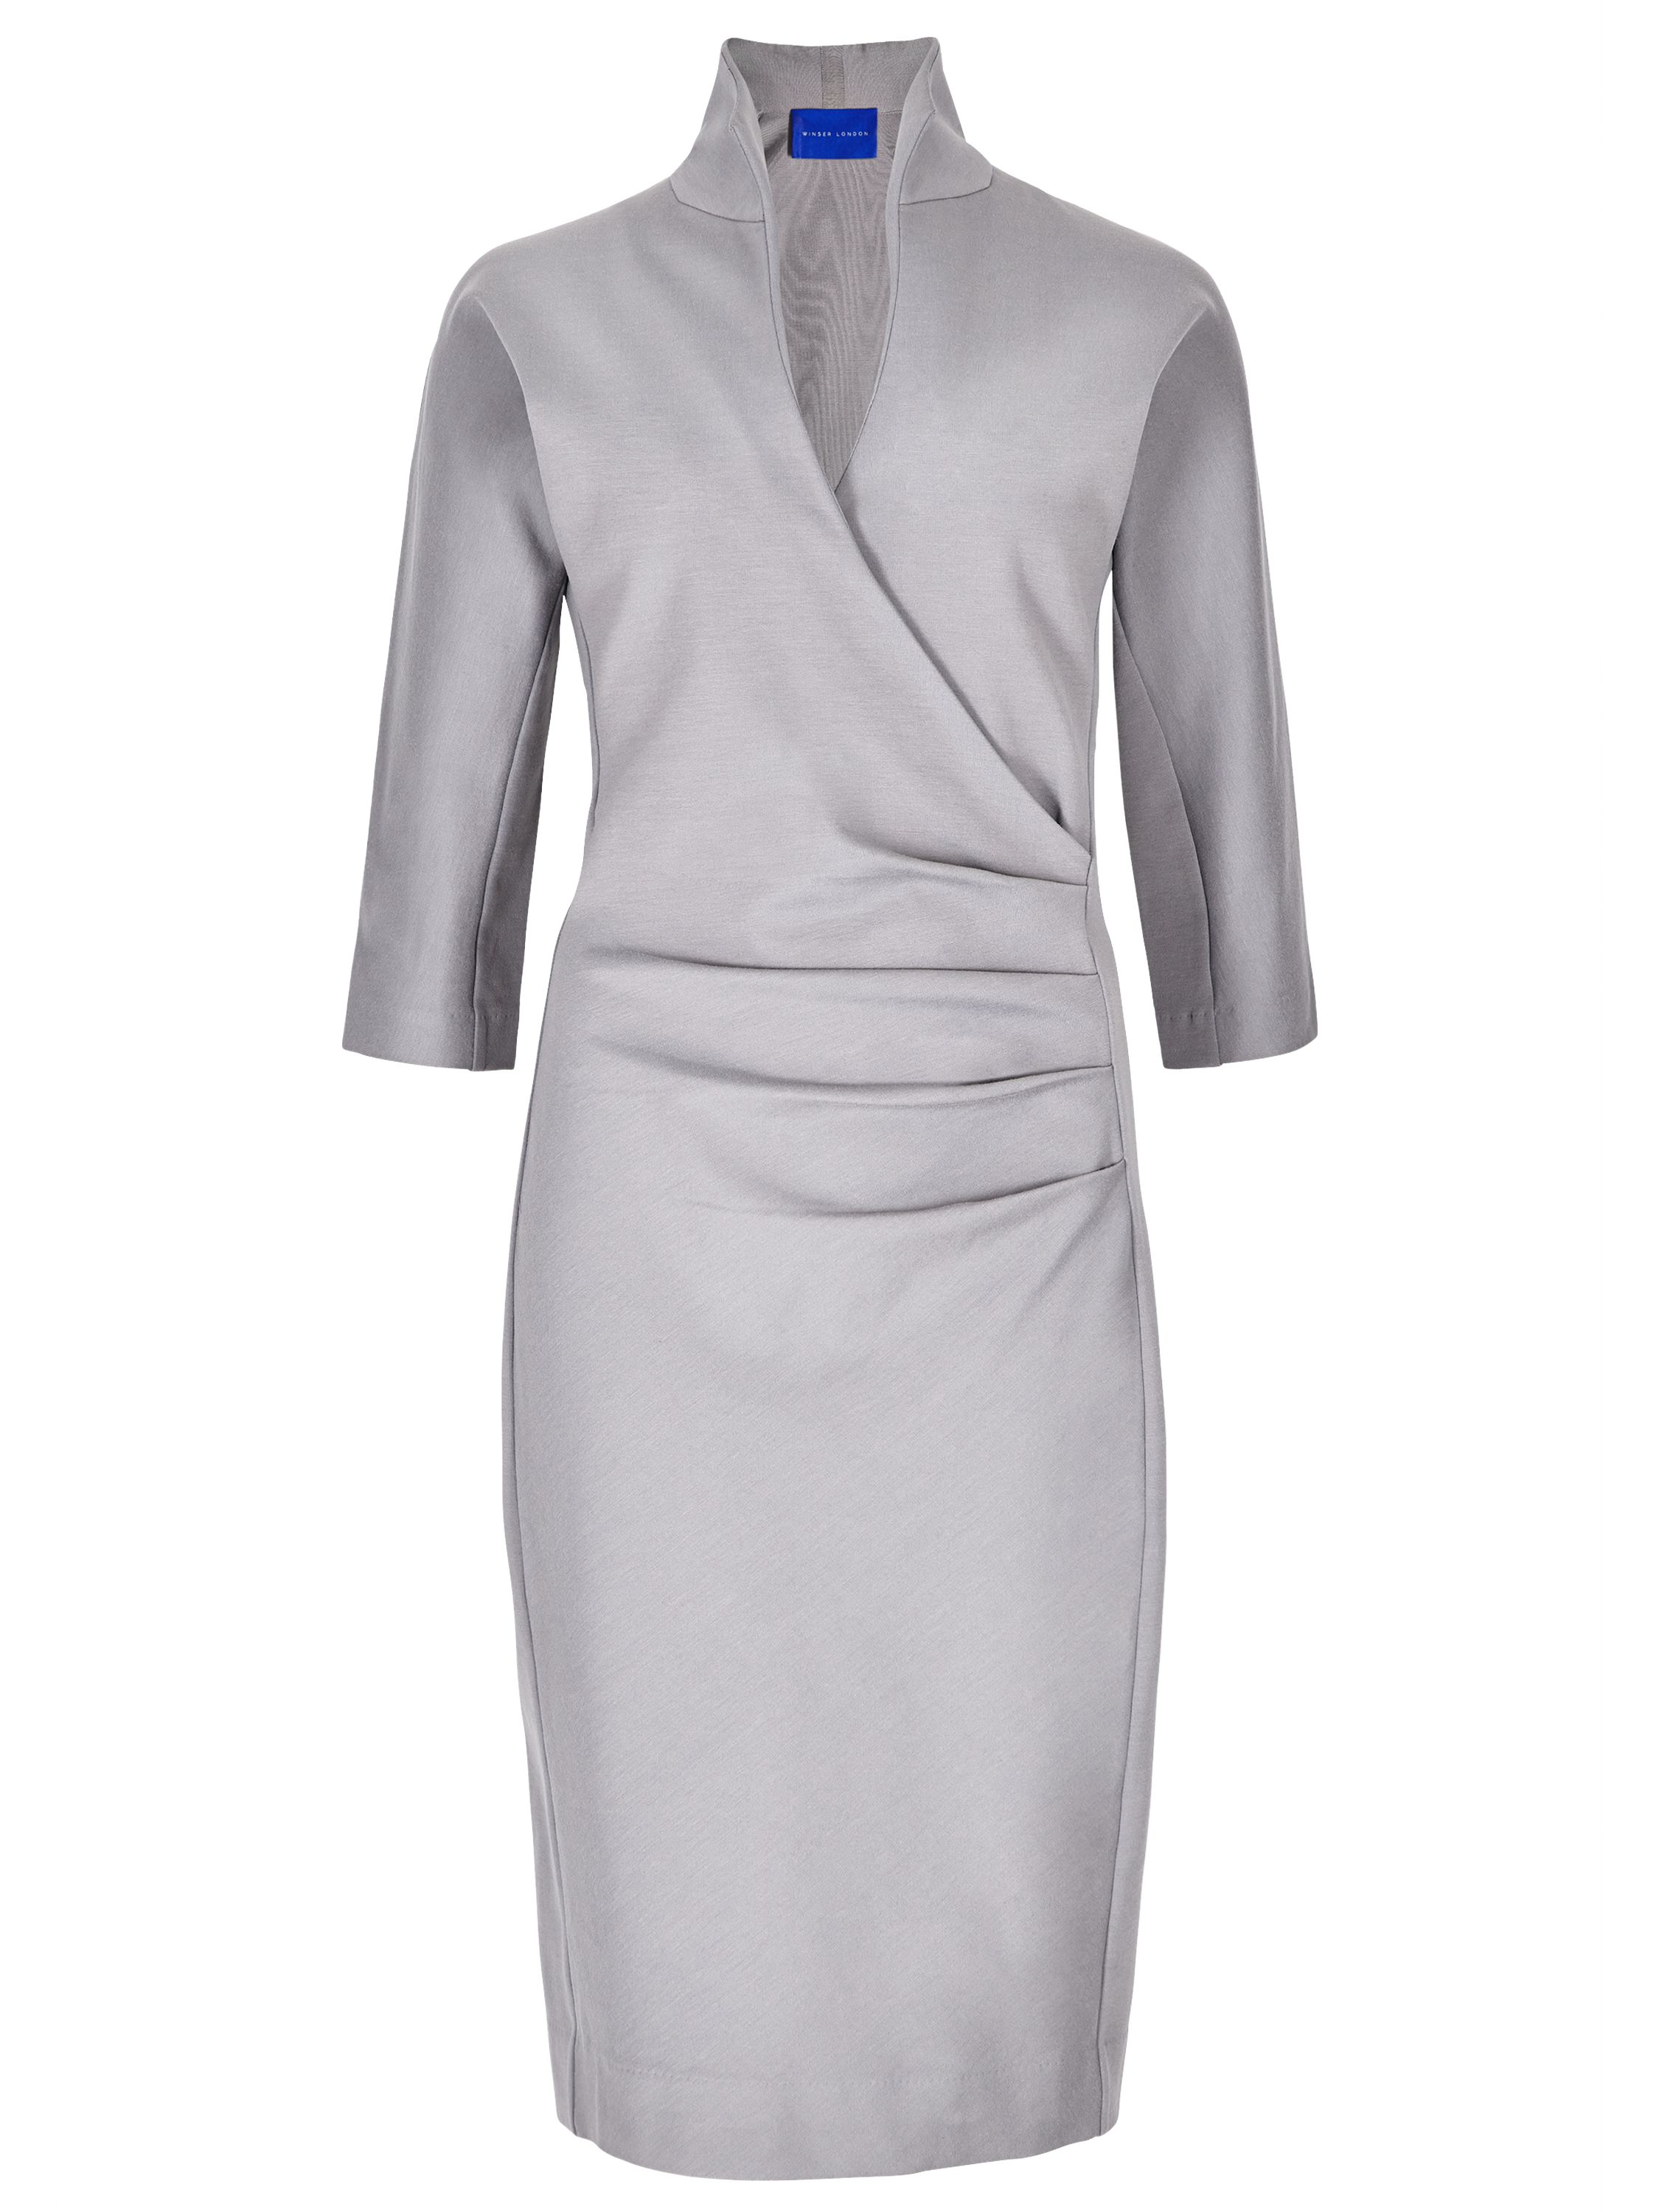 Winser London Grace Miracle Dress, Grey